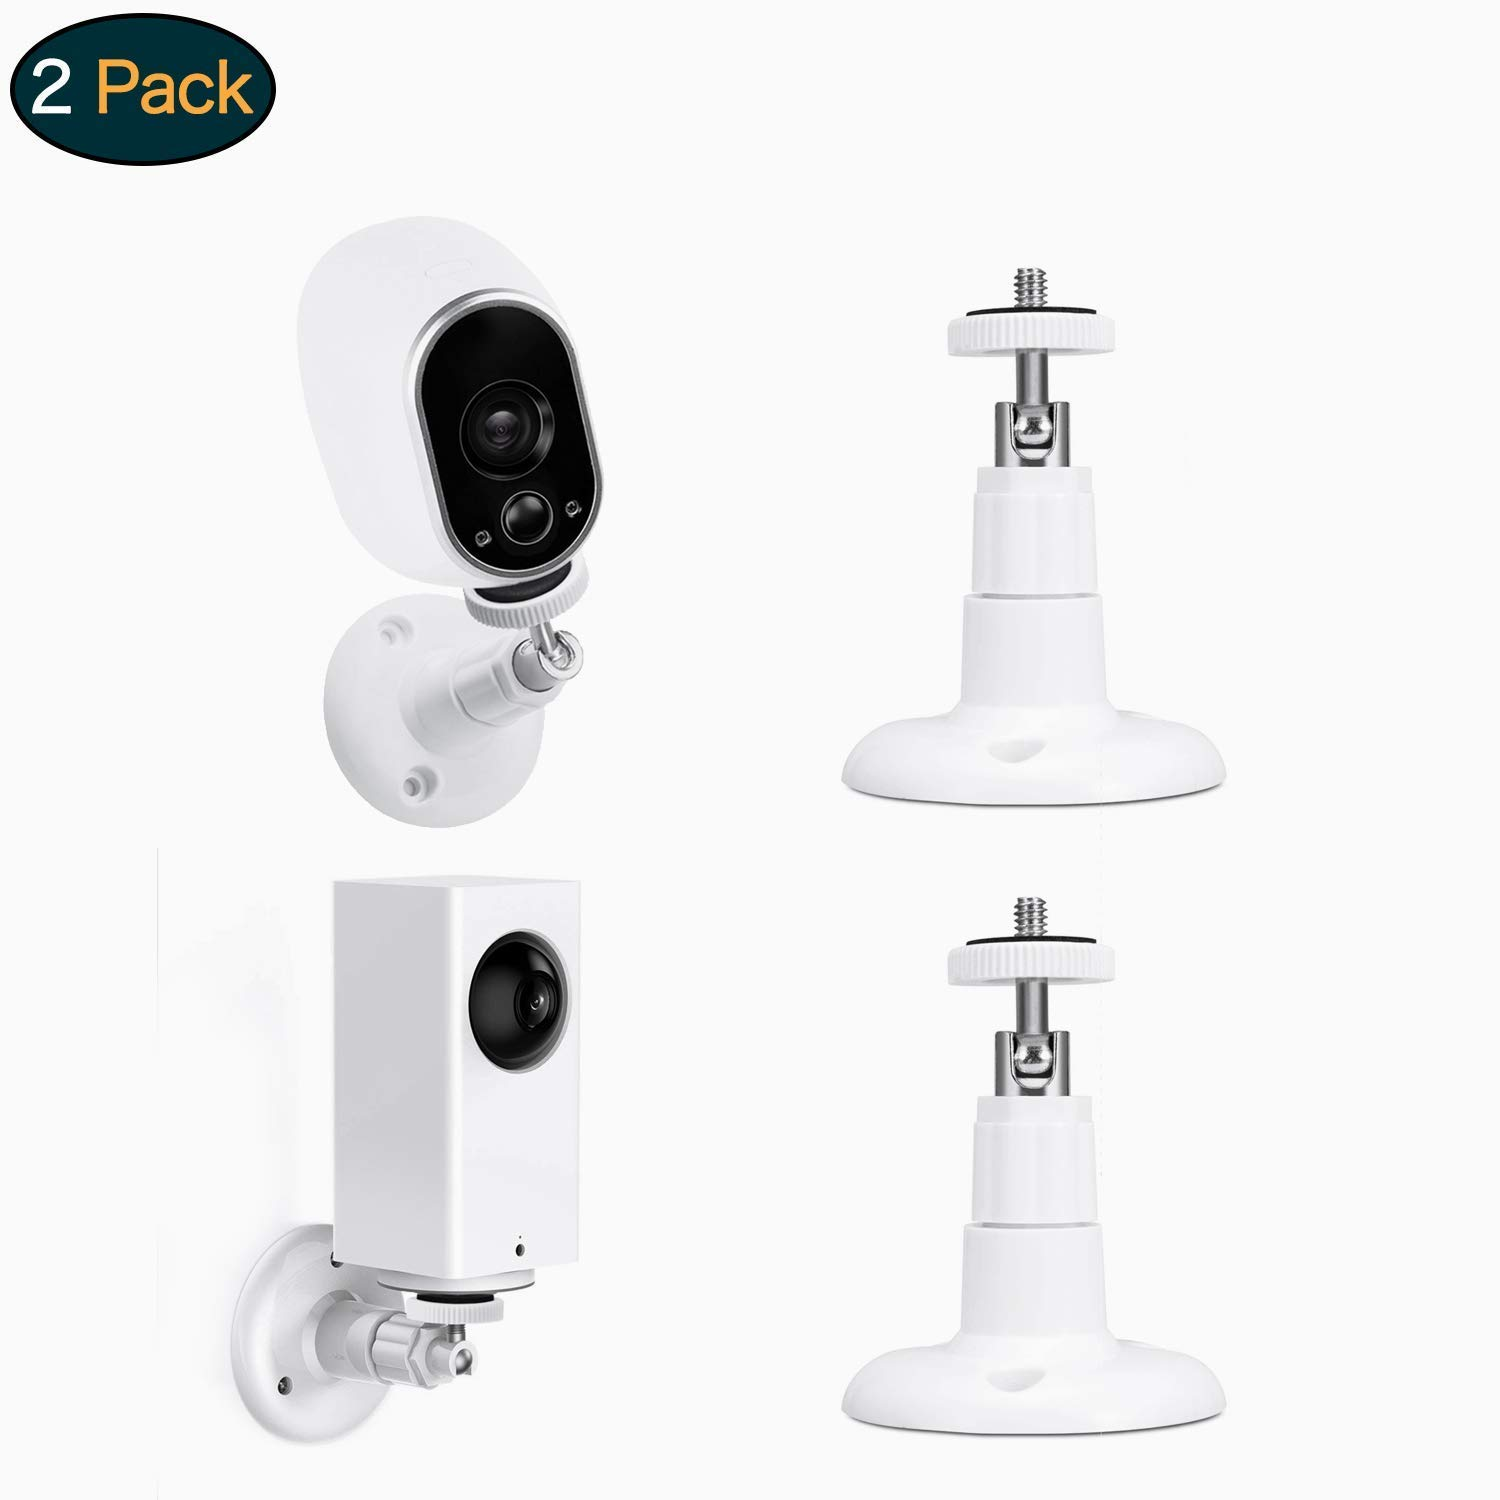 Swee Lightweight Wall Mount, Adjust to Any Angle in/Outdoor Mount Compatible with CCTV, Arlo Cameras, Arlo Pro, Motorola Baby, Baby Monitor, Oculus Rift Sensors, Secure Vtech Safe(2 Pack) (White)